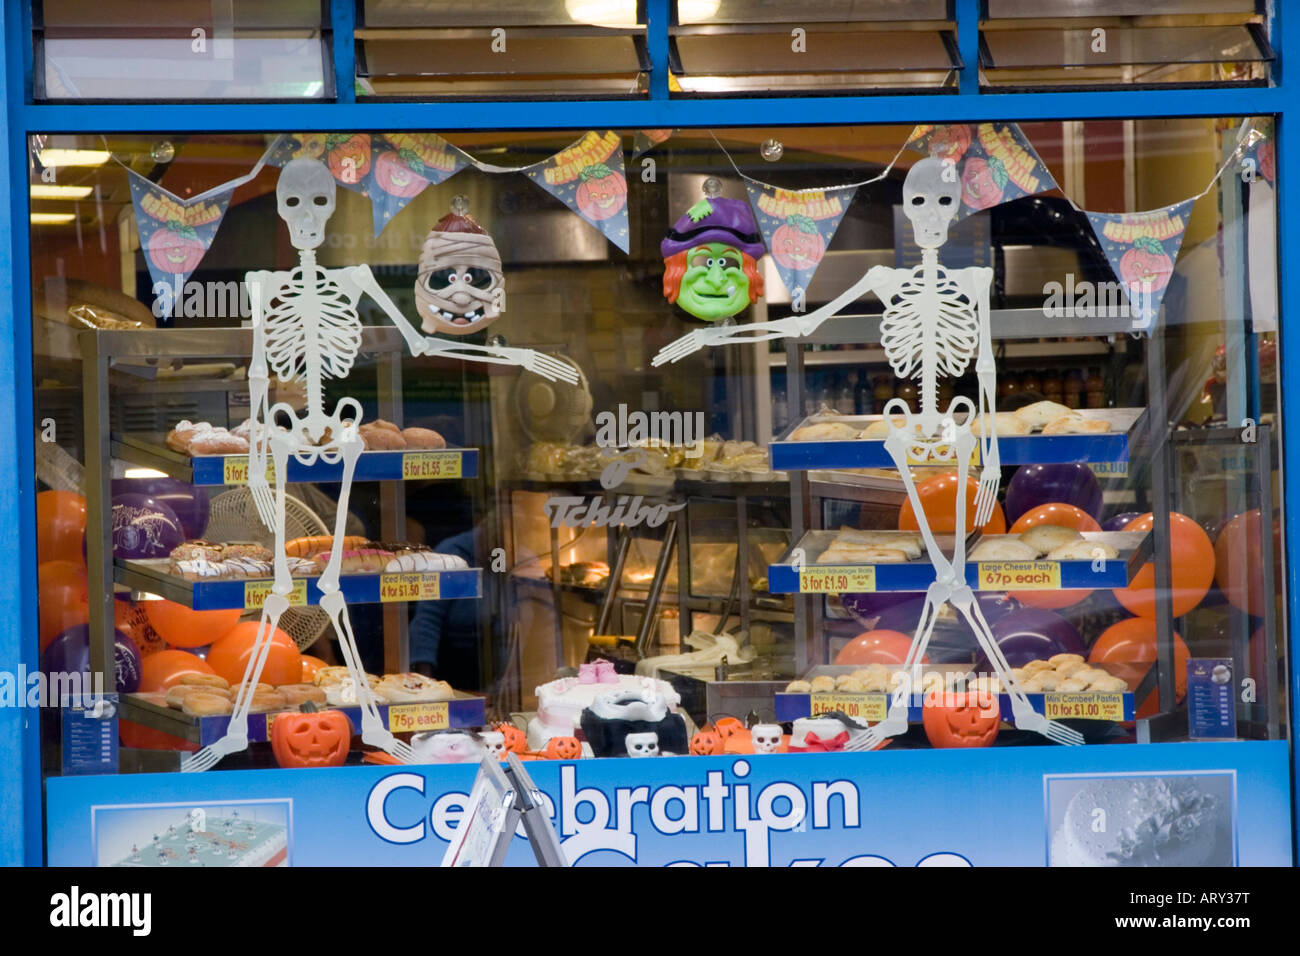 Halloween Shop Displays.Halloween Props And Costumes In A Shop Window Display Stock Photo